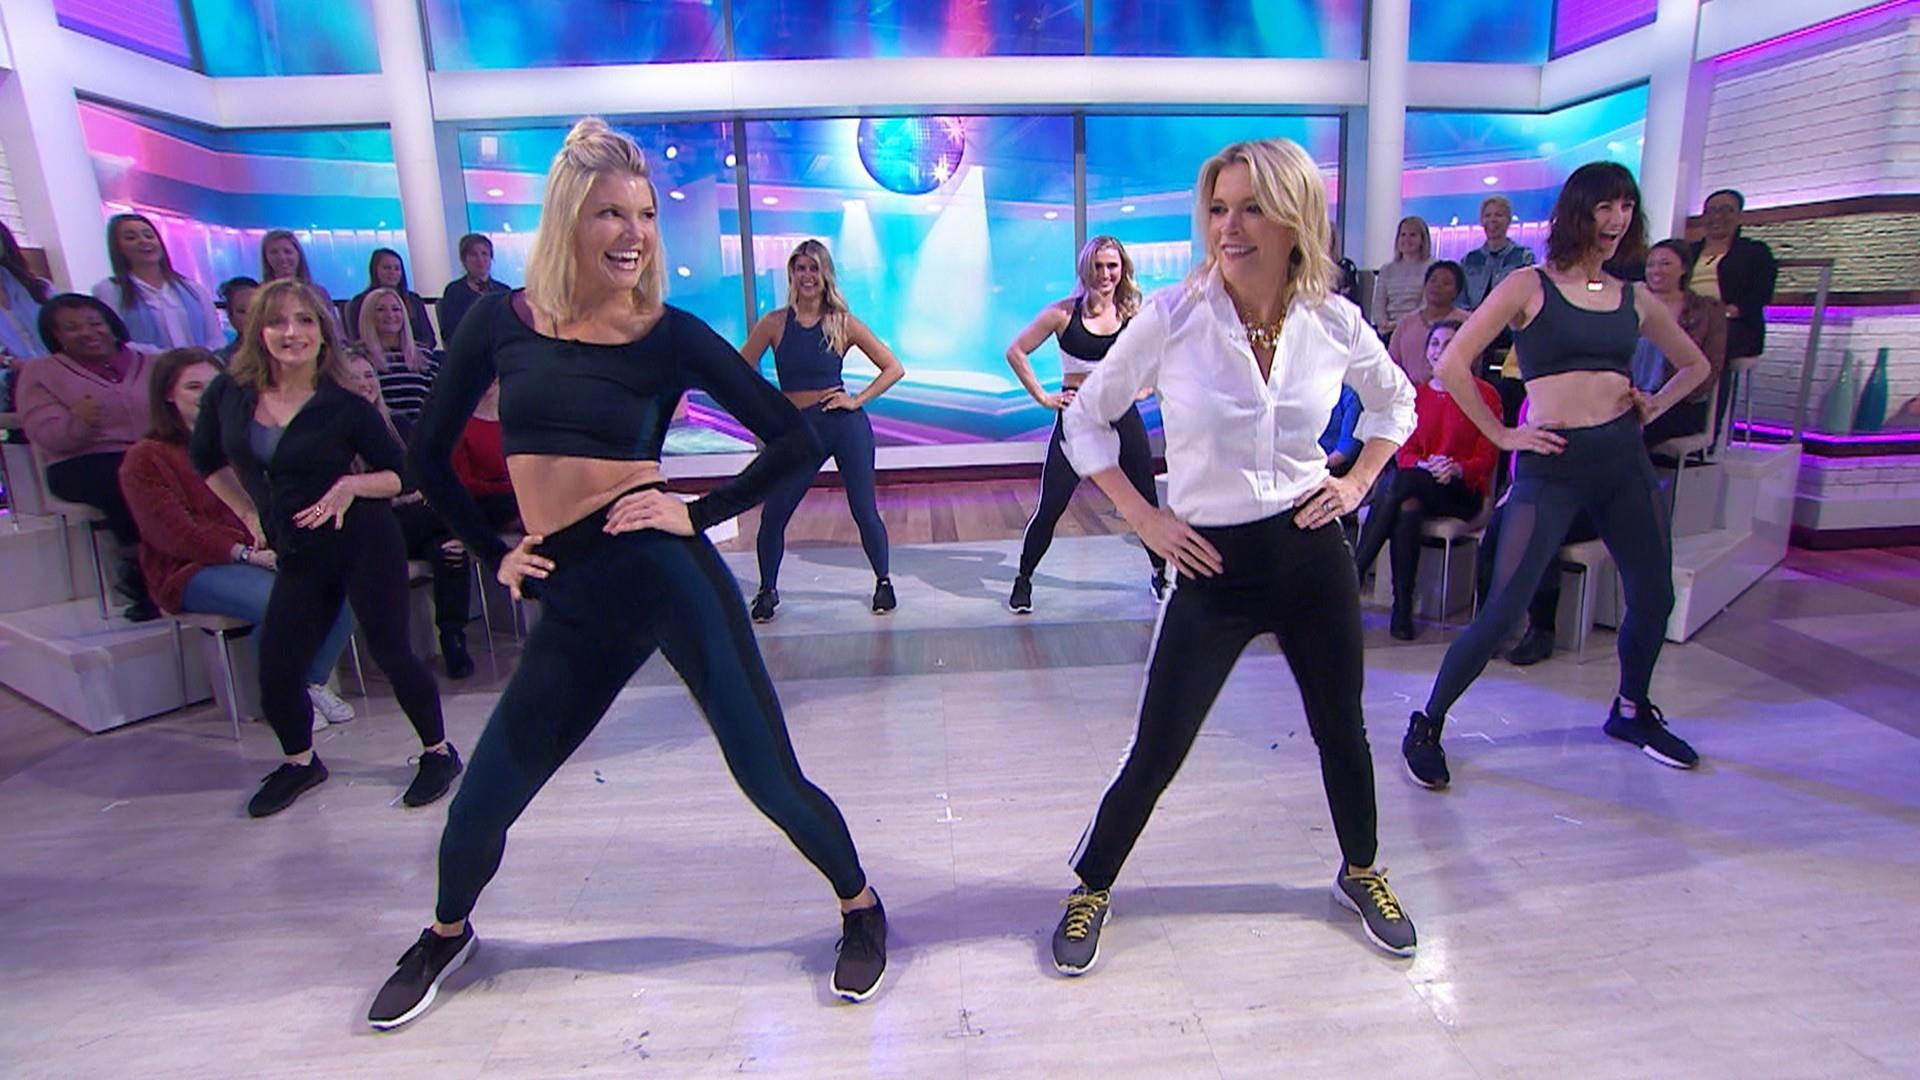 These Dancecardio Moves Will Help You Burn Calories Fast